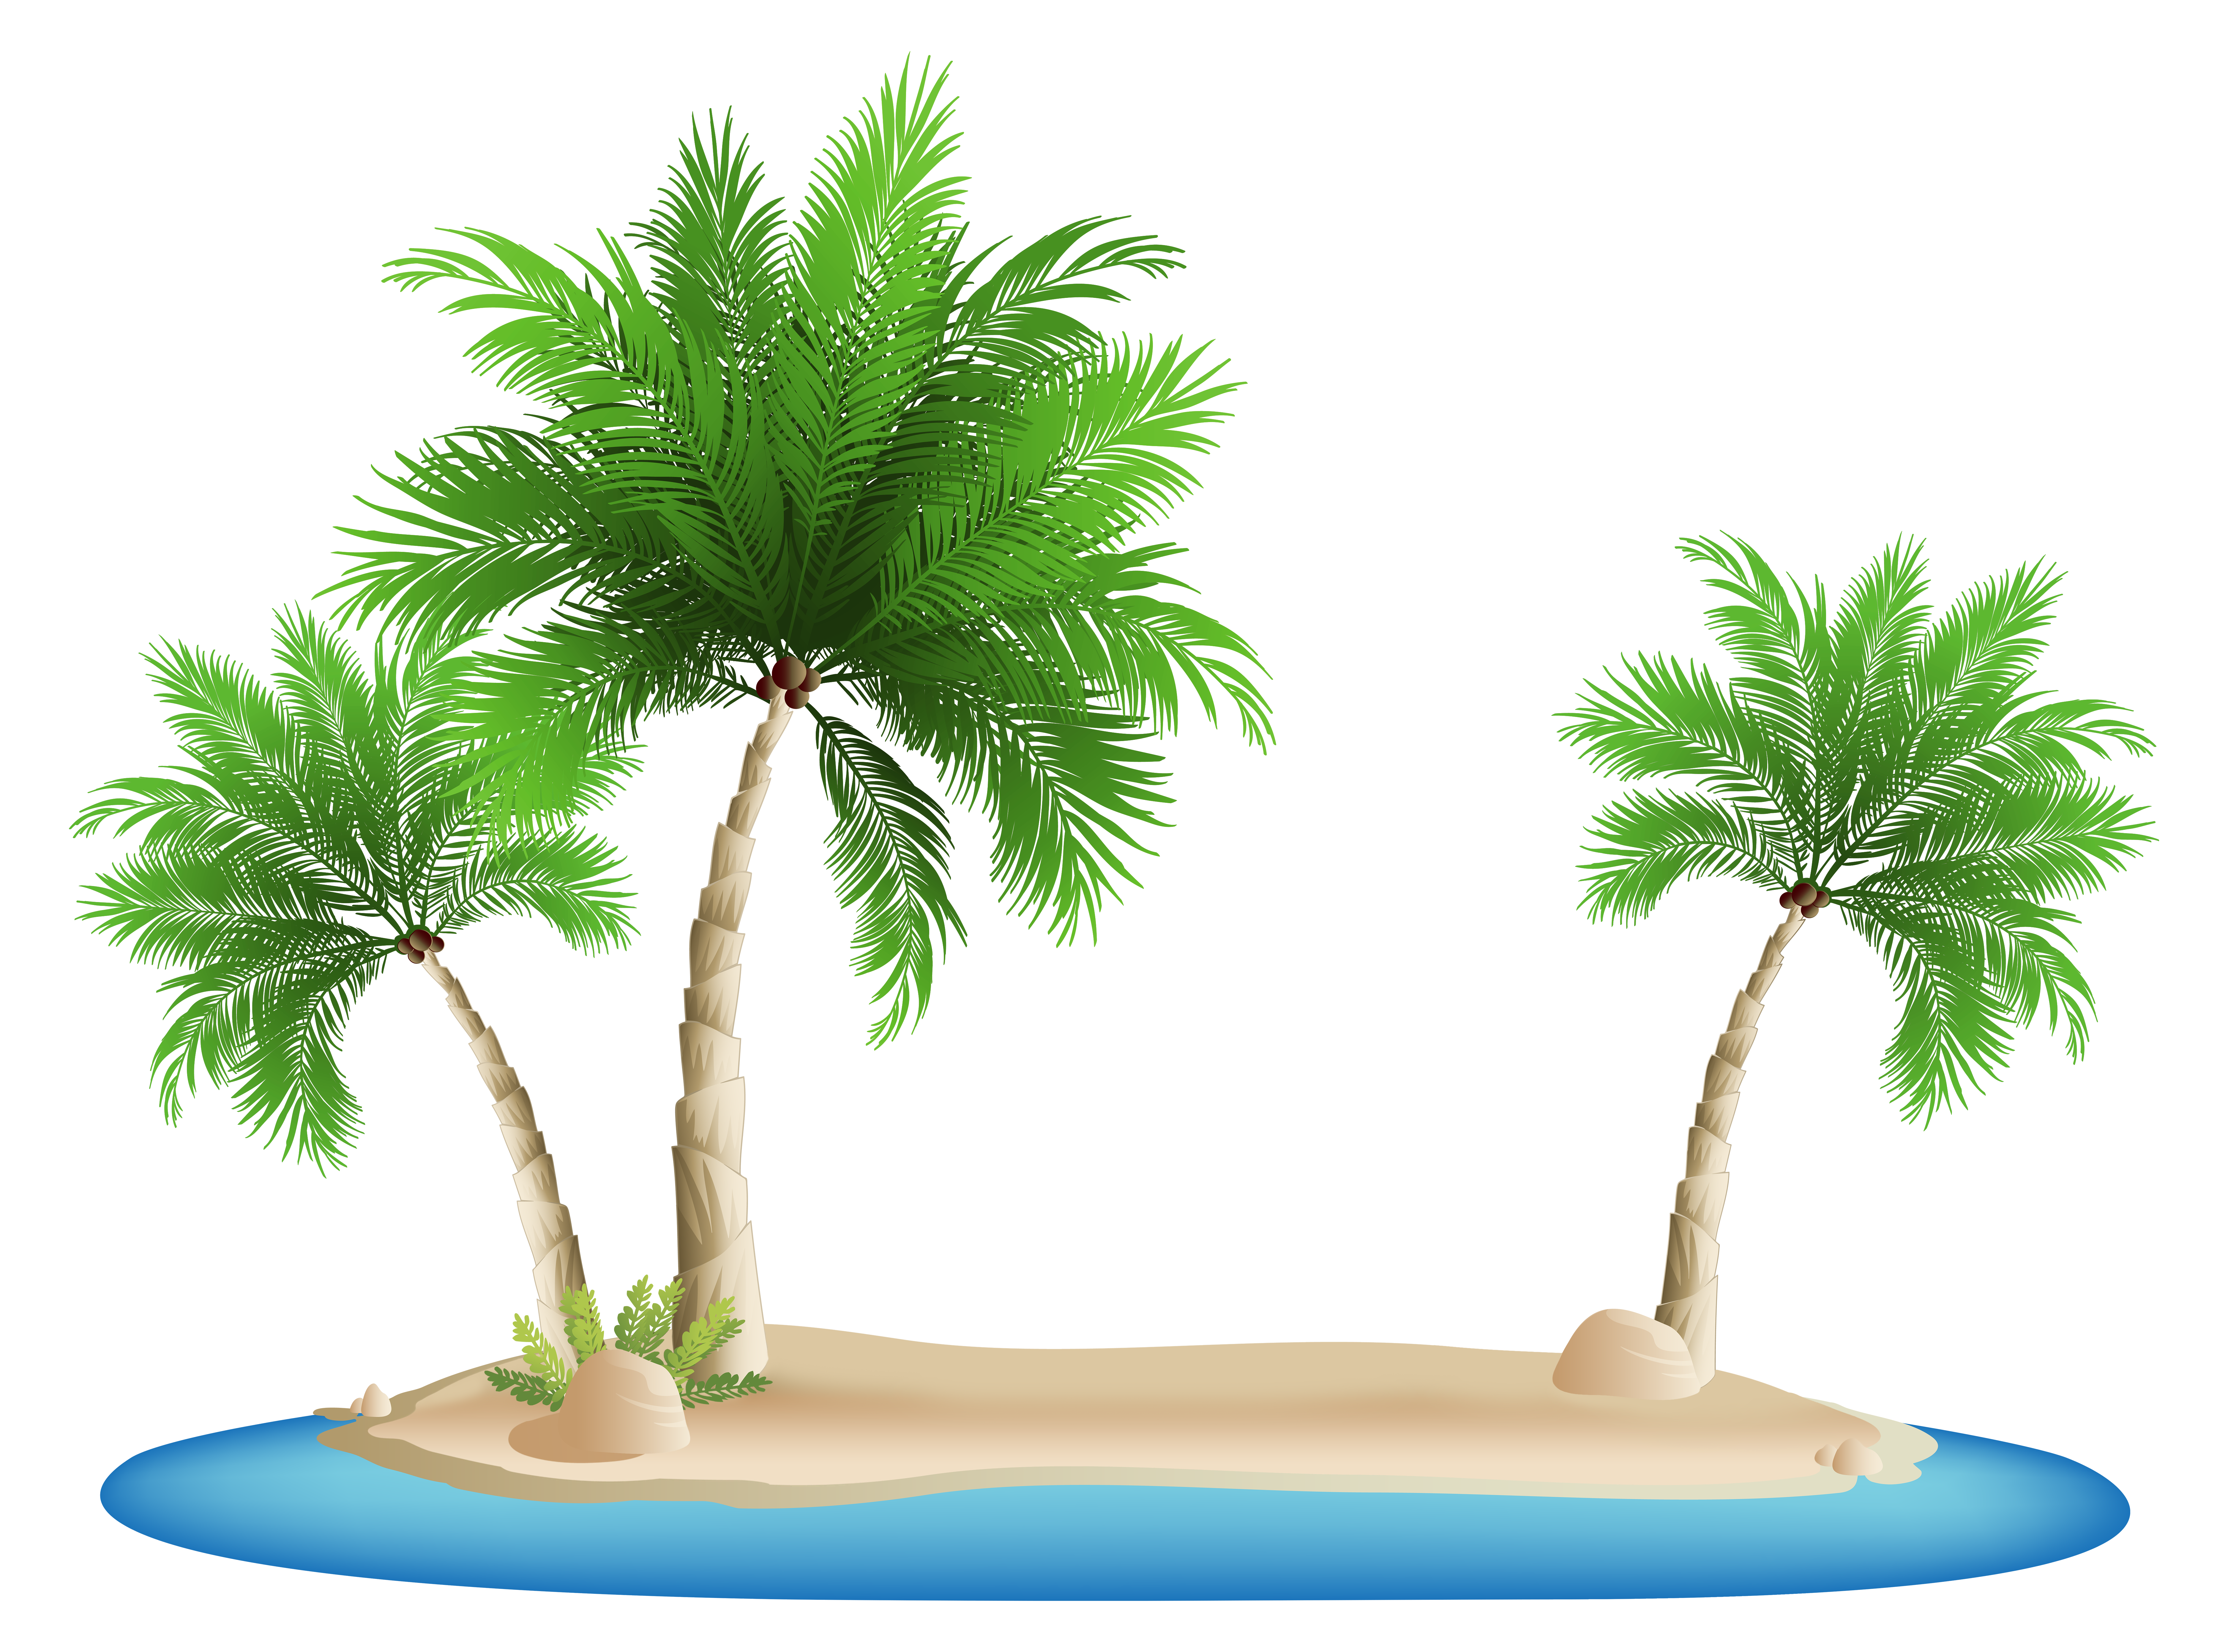 Palm Trees Island PNG Clipart Image.